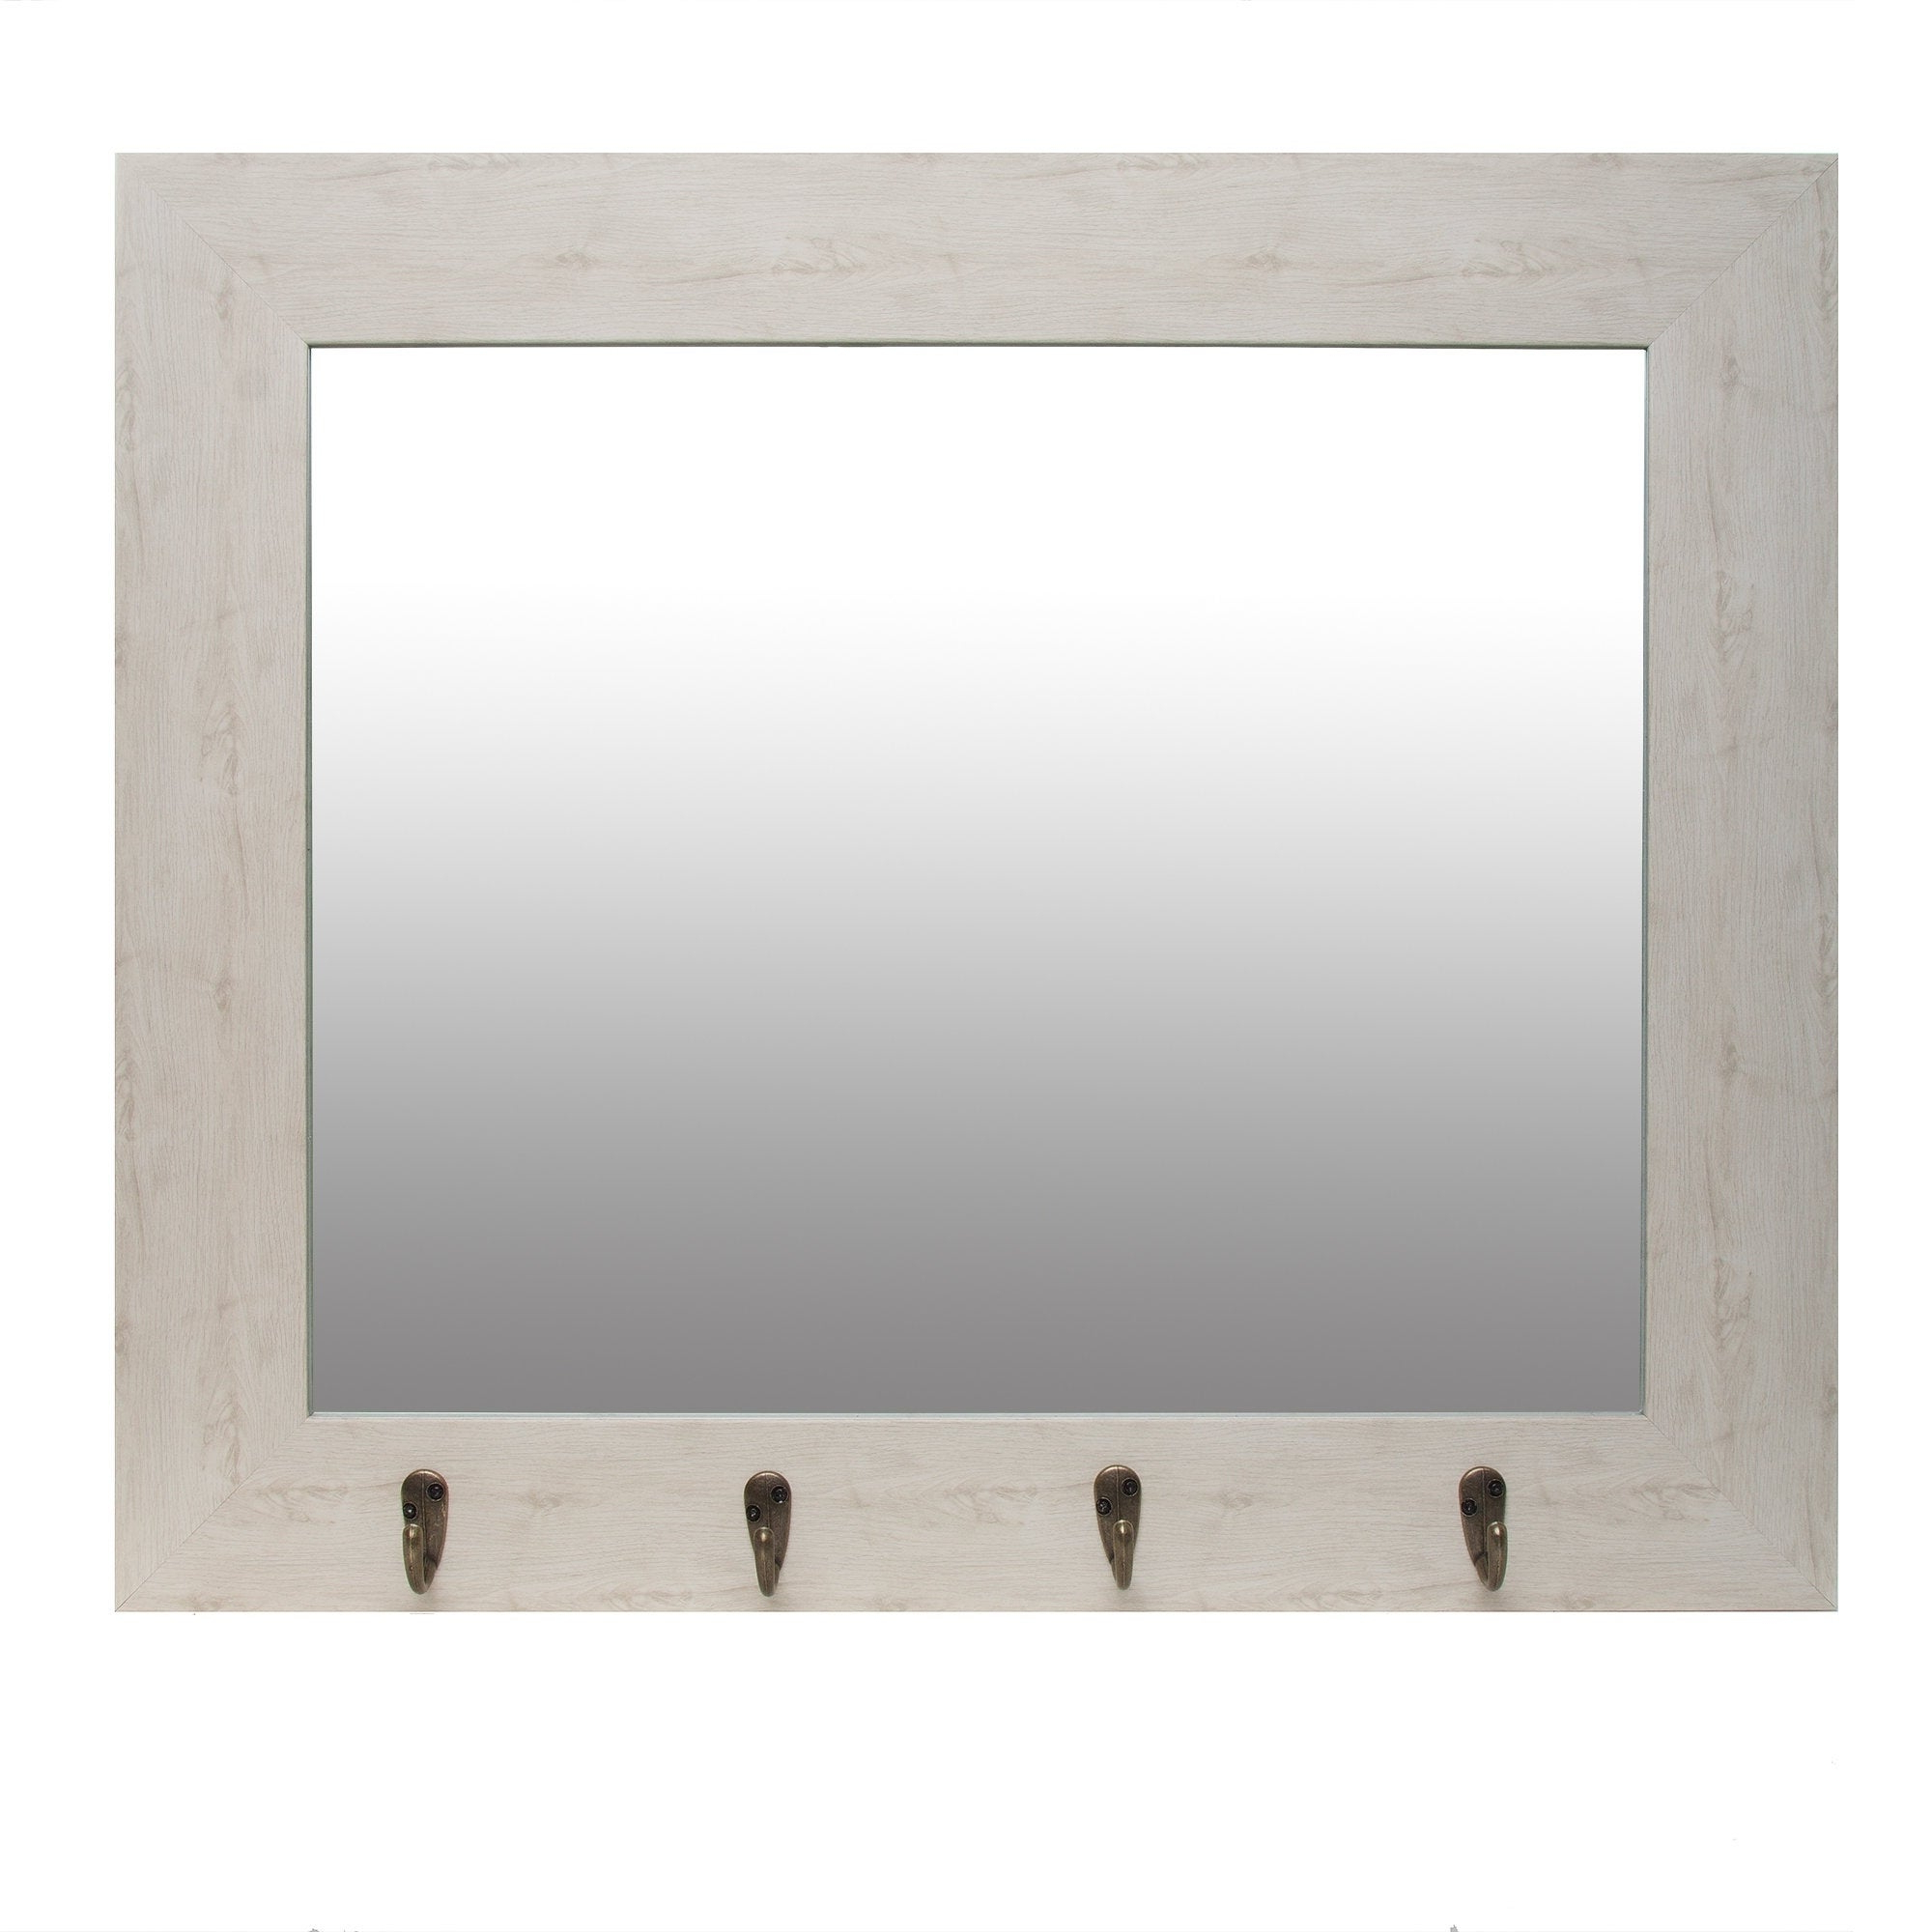 Current Foyer Wall Mirror With Hooks Inside Wall Mirrors With Hooks (View 4 of 20)